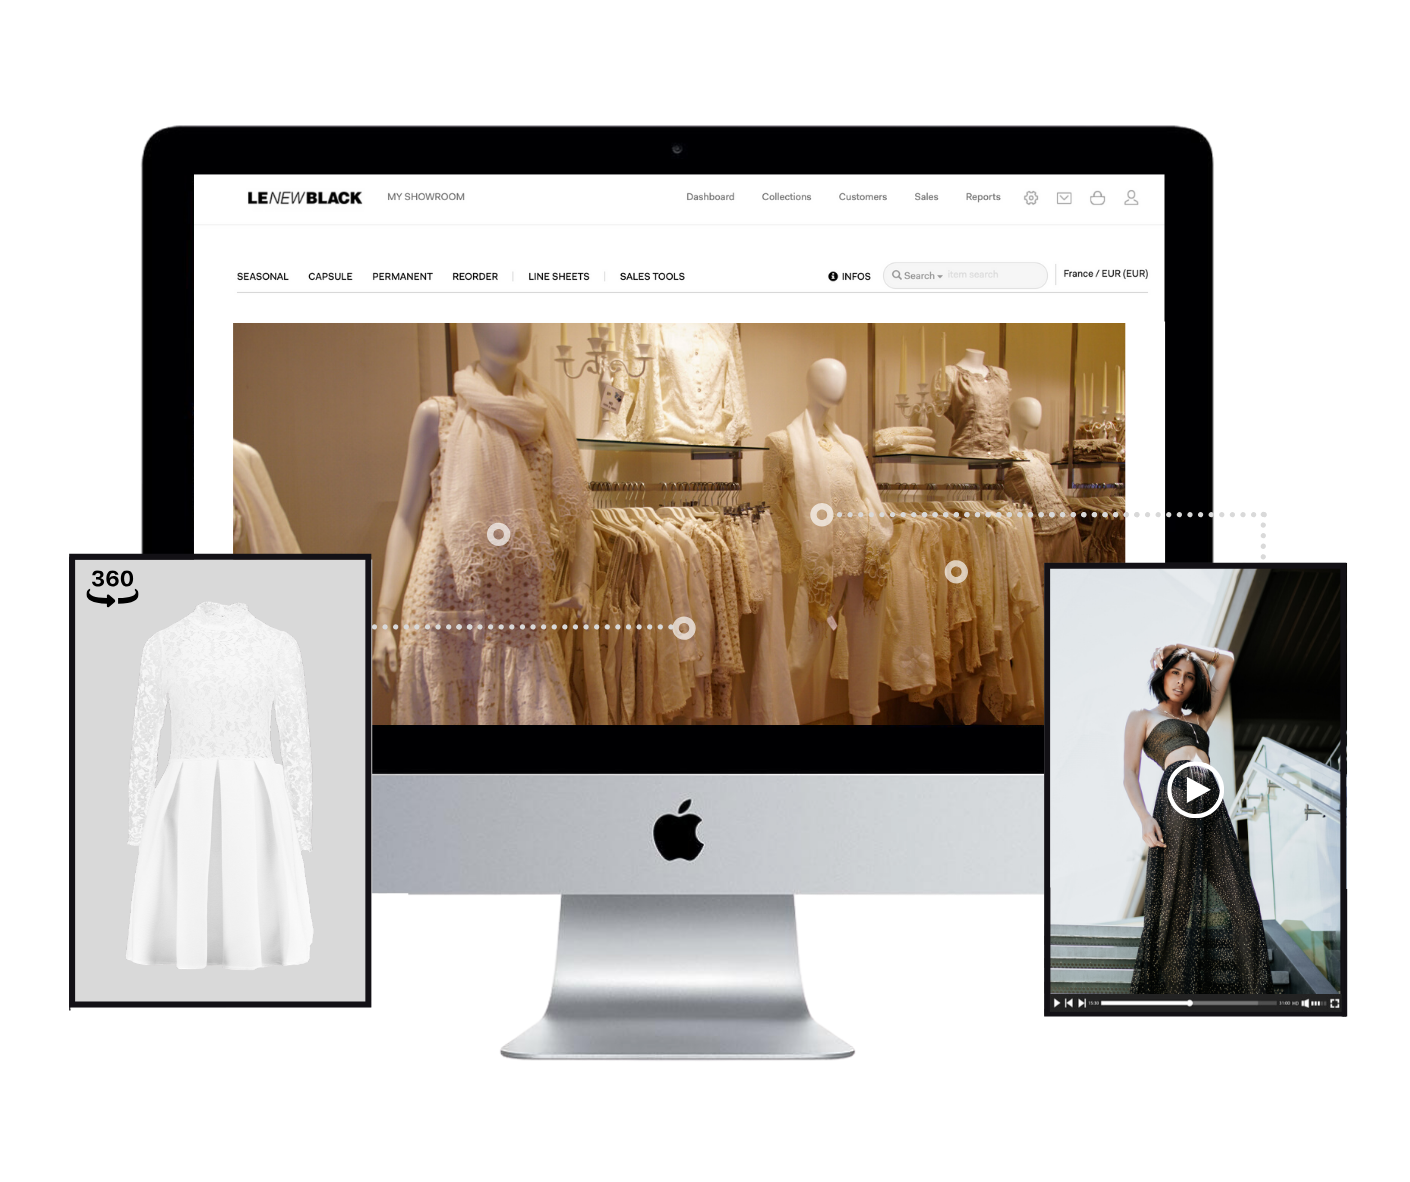 Desktop screen of Le New Black's virtual showroom platform